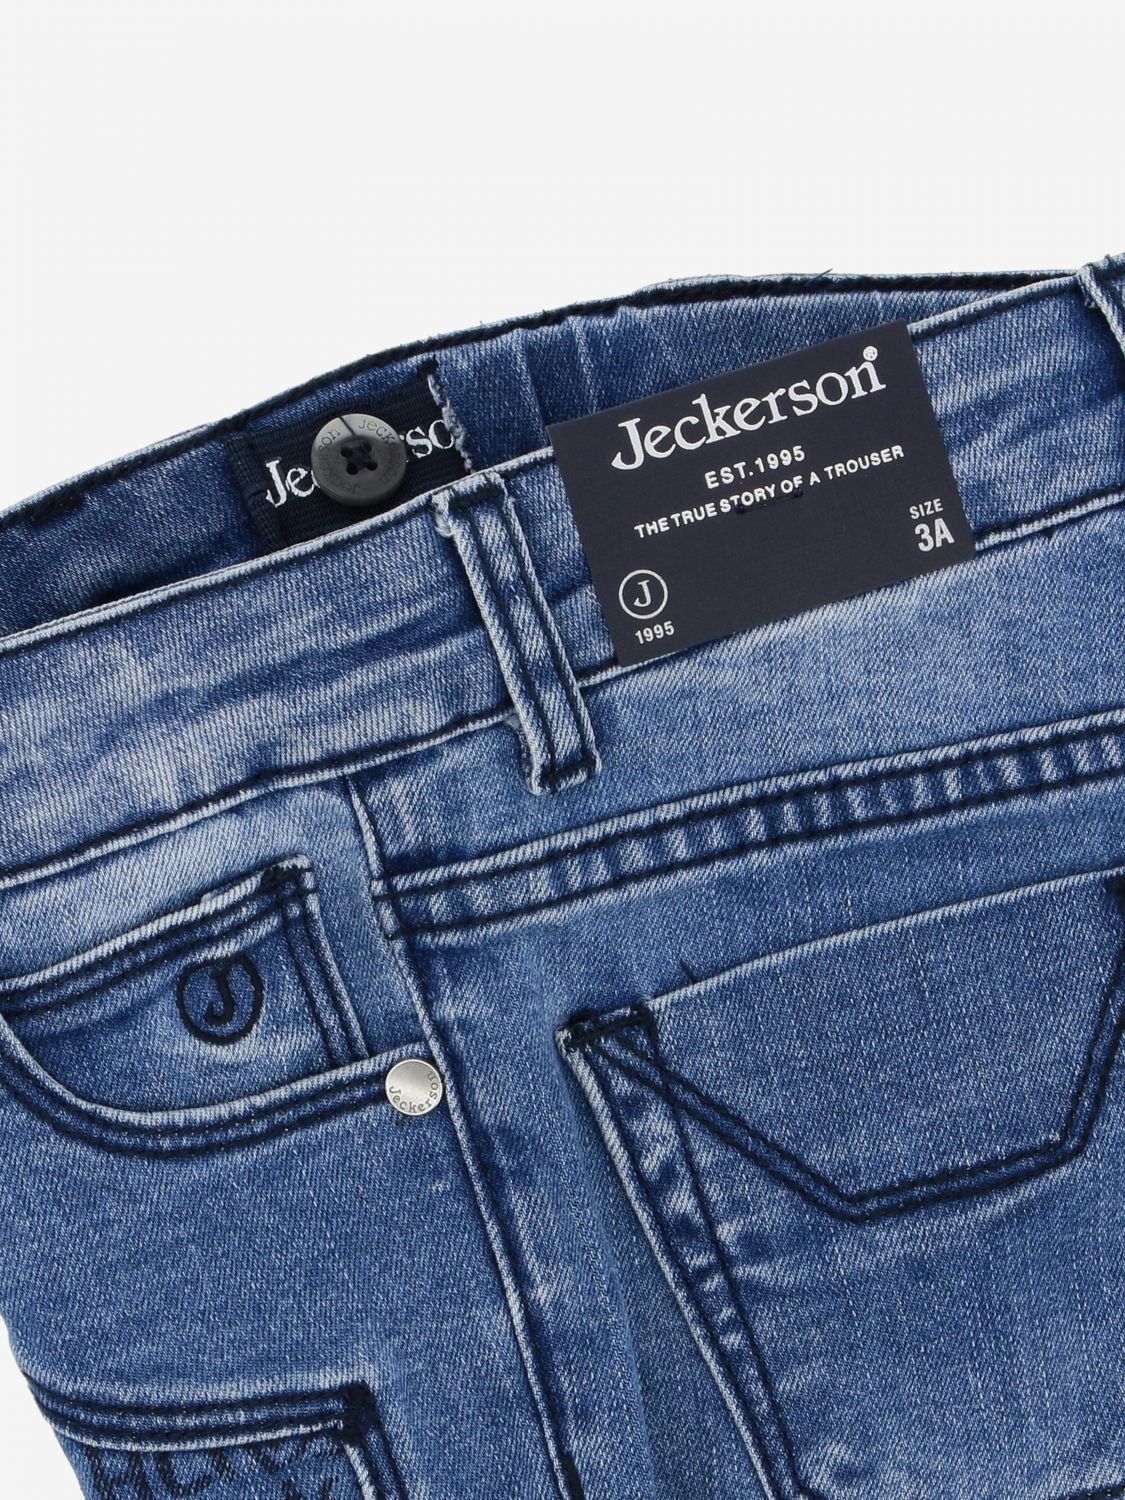 Jeckerson denim jeans with patterned patches stone washed 3